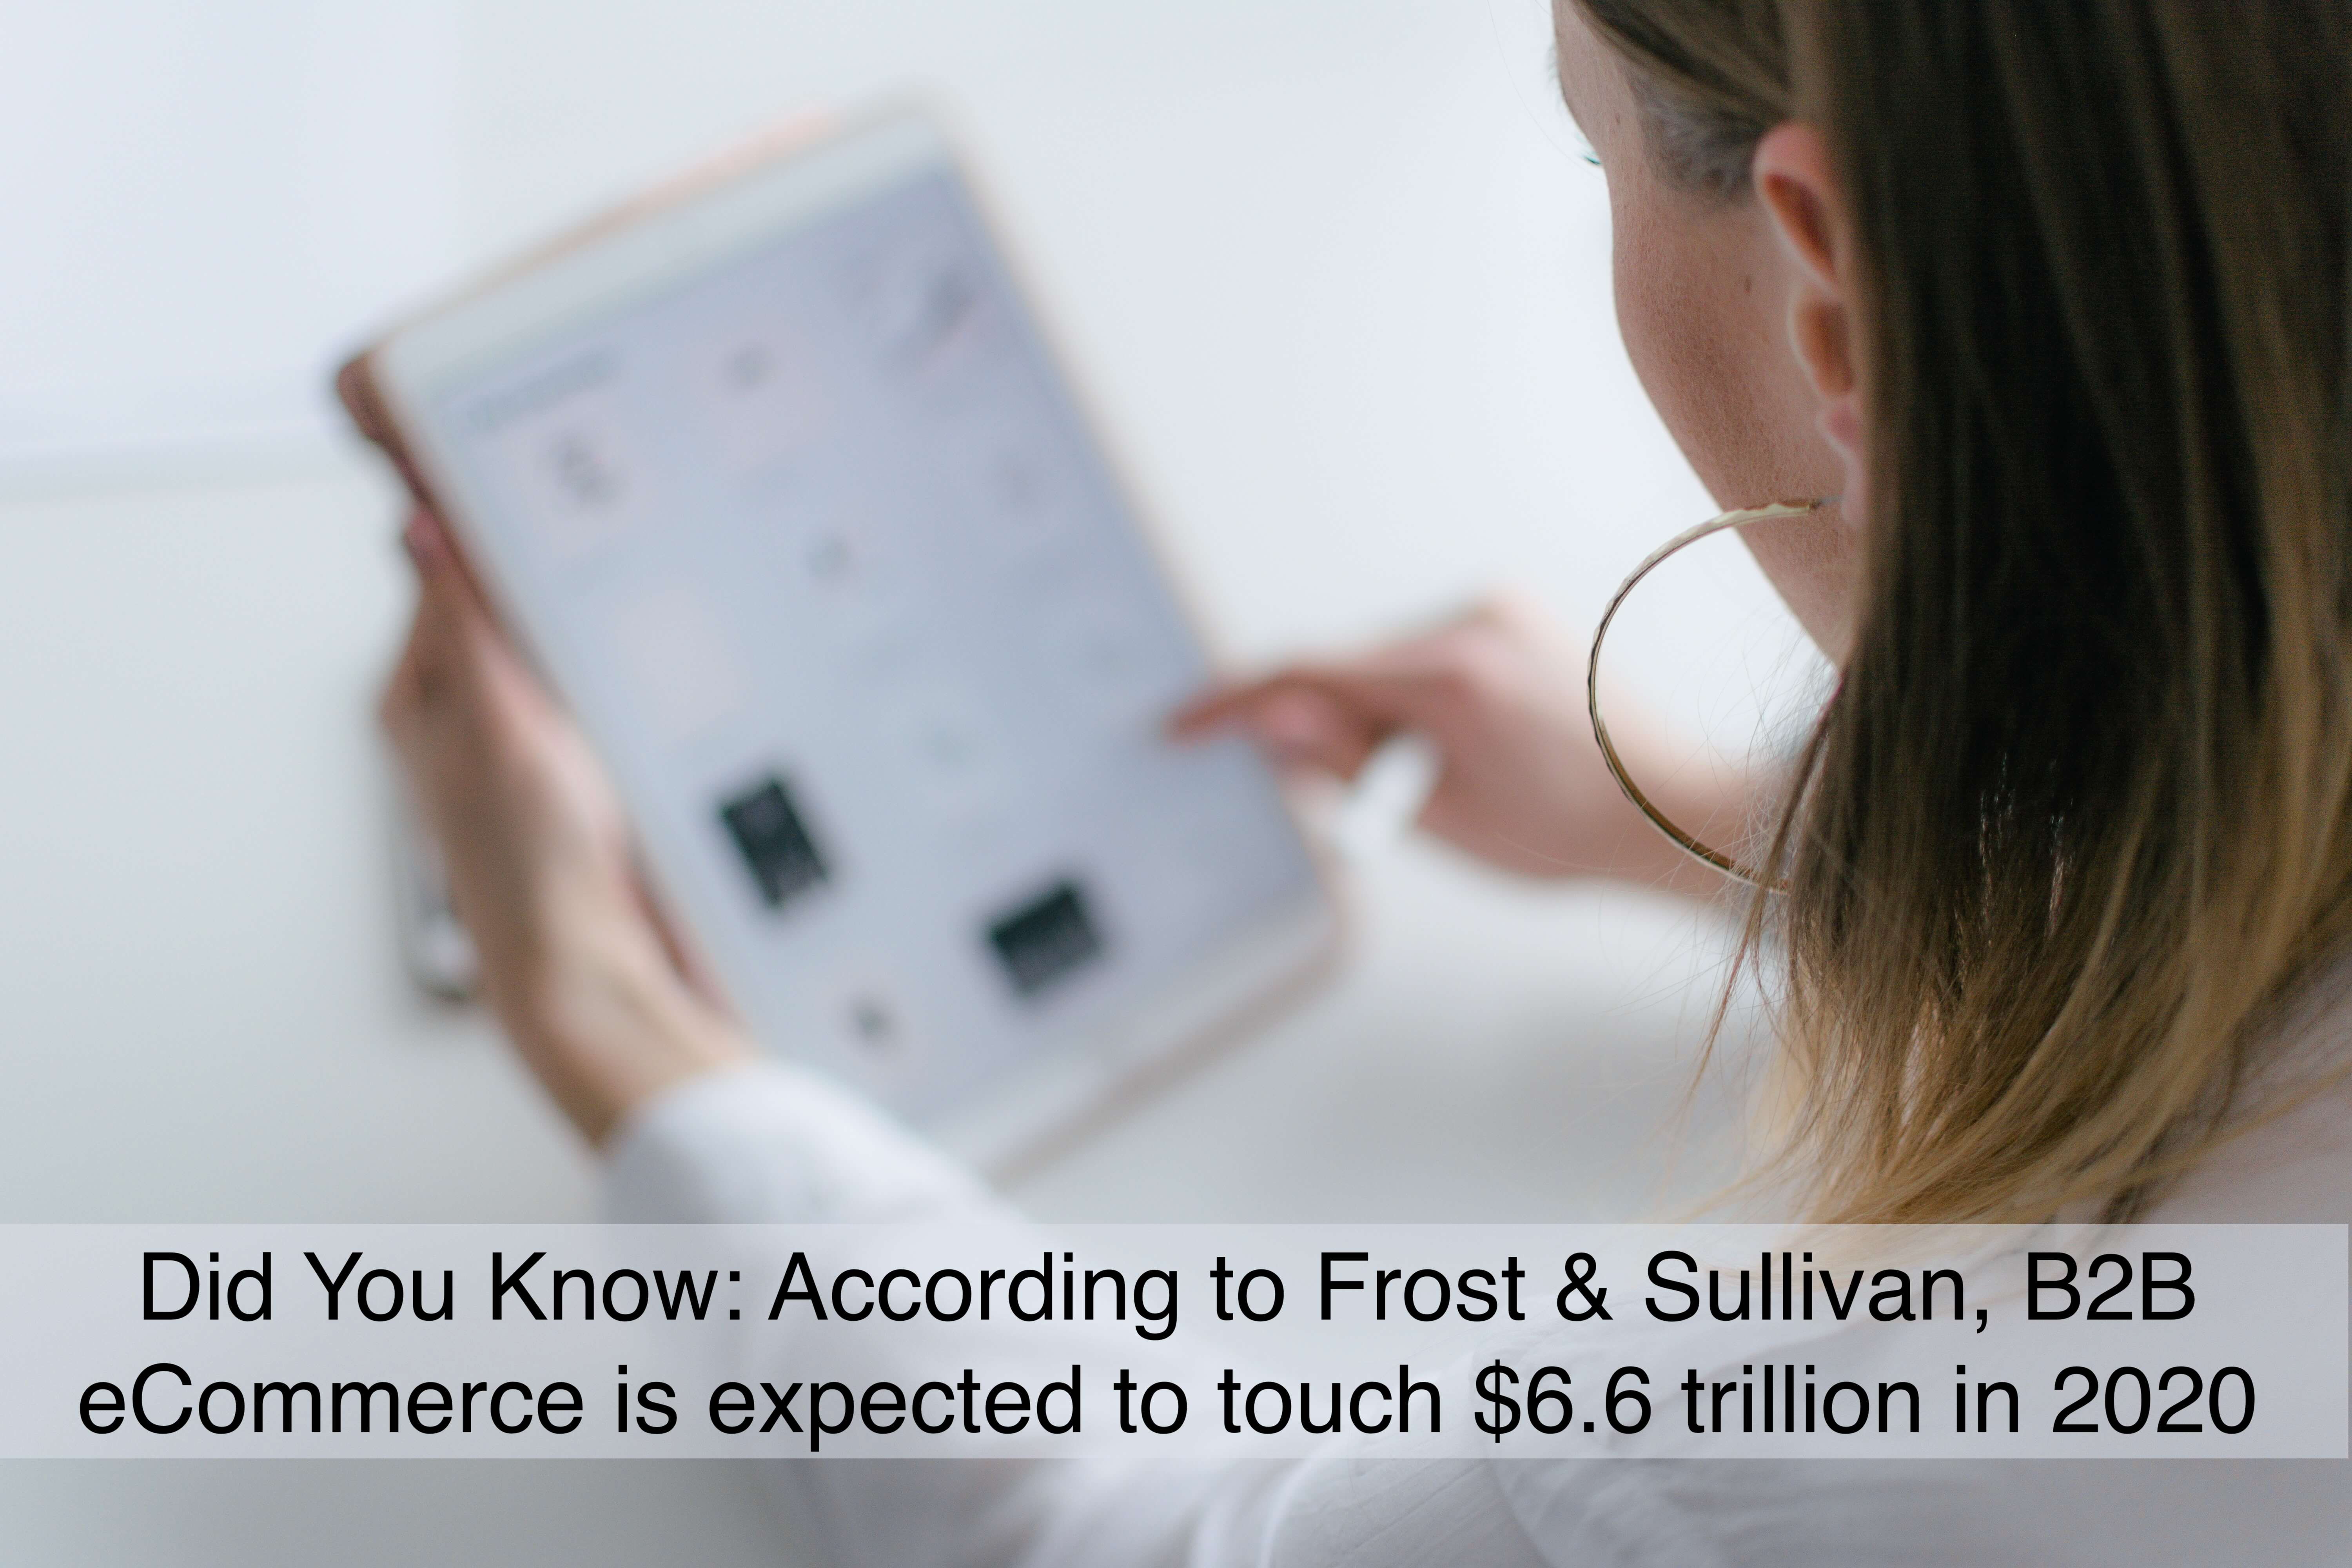 According to Frost & Sullivan, B2B eCommerce is expected to touch $6.6 trillion in 2020.